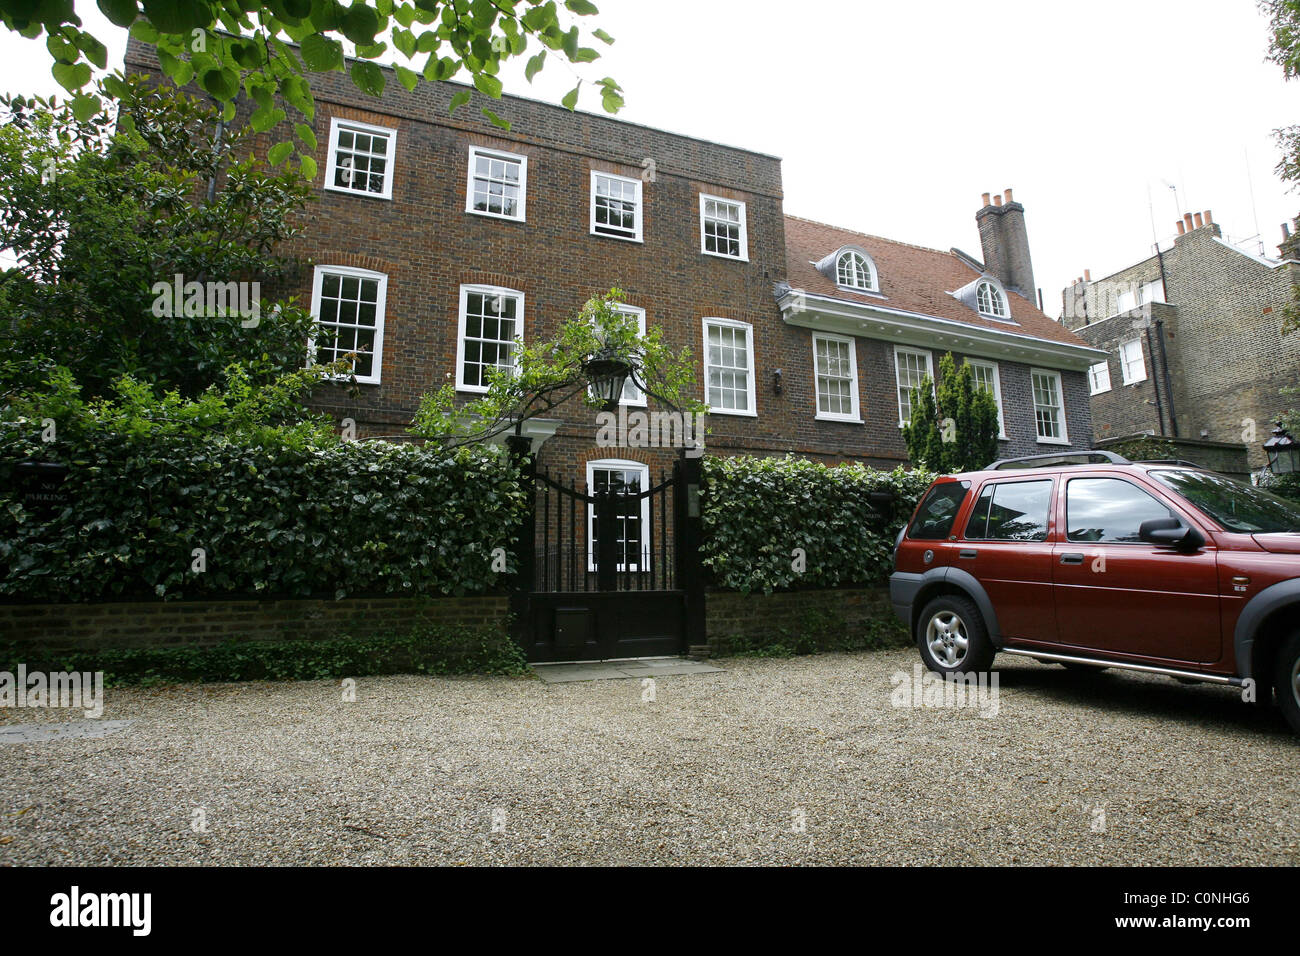 george michael 39 s house in highgate london england october 2008